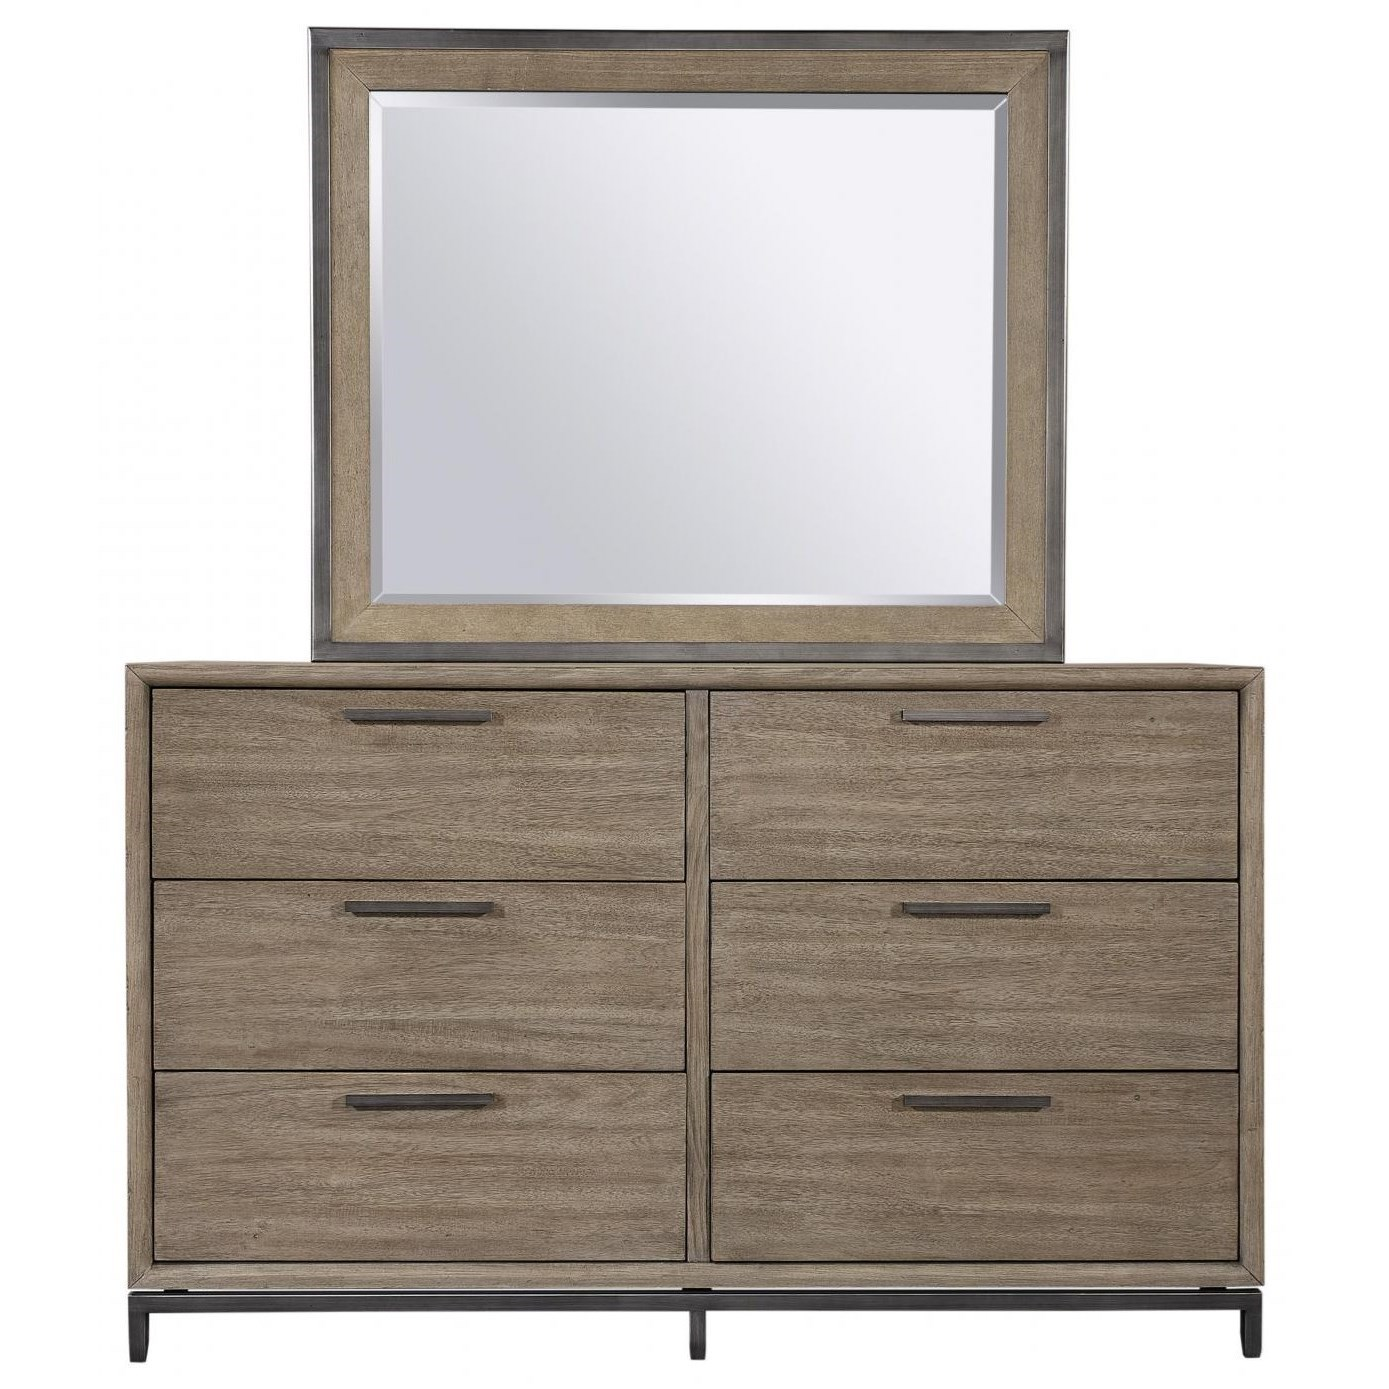 Trellis Dresser and Mirror by Aspenhome at Walker's Furniture